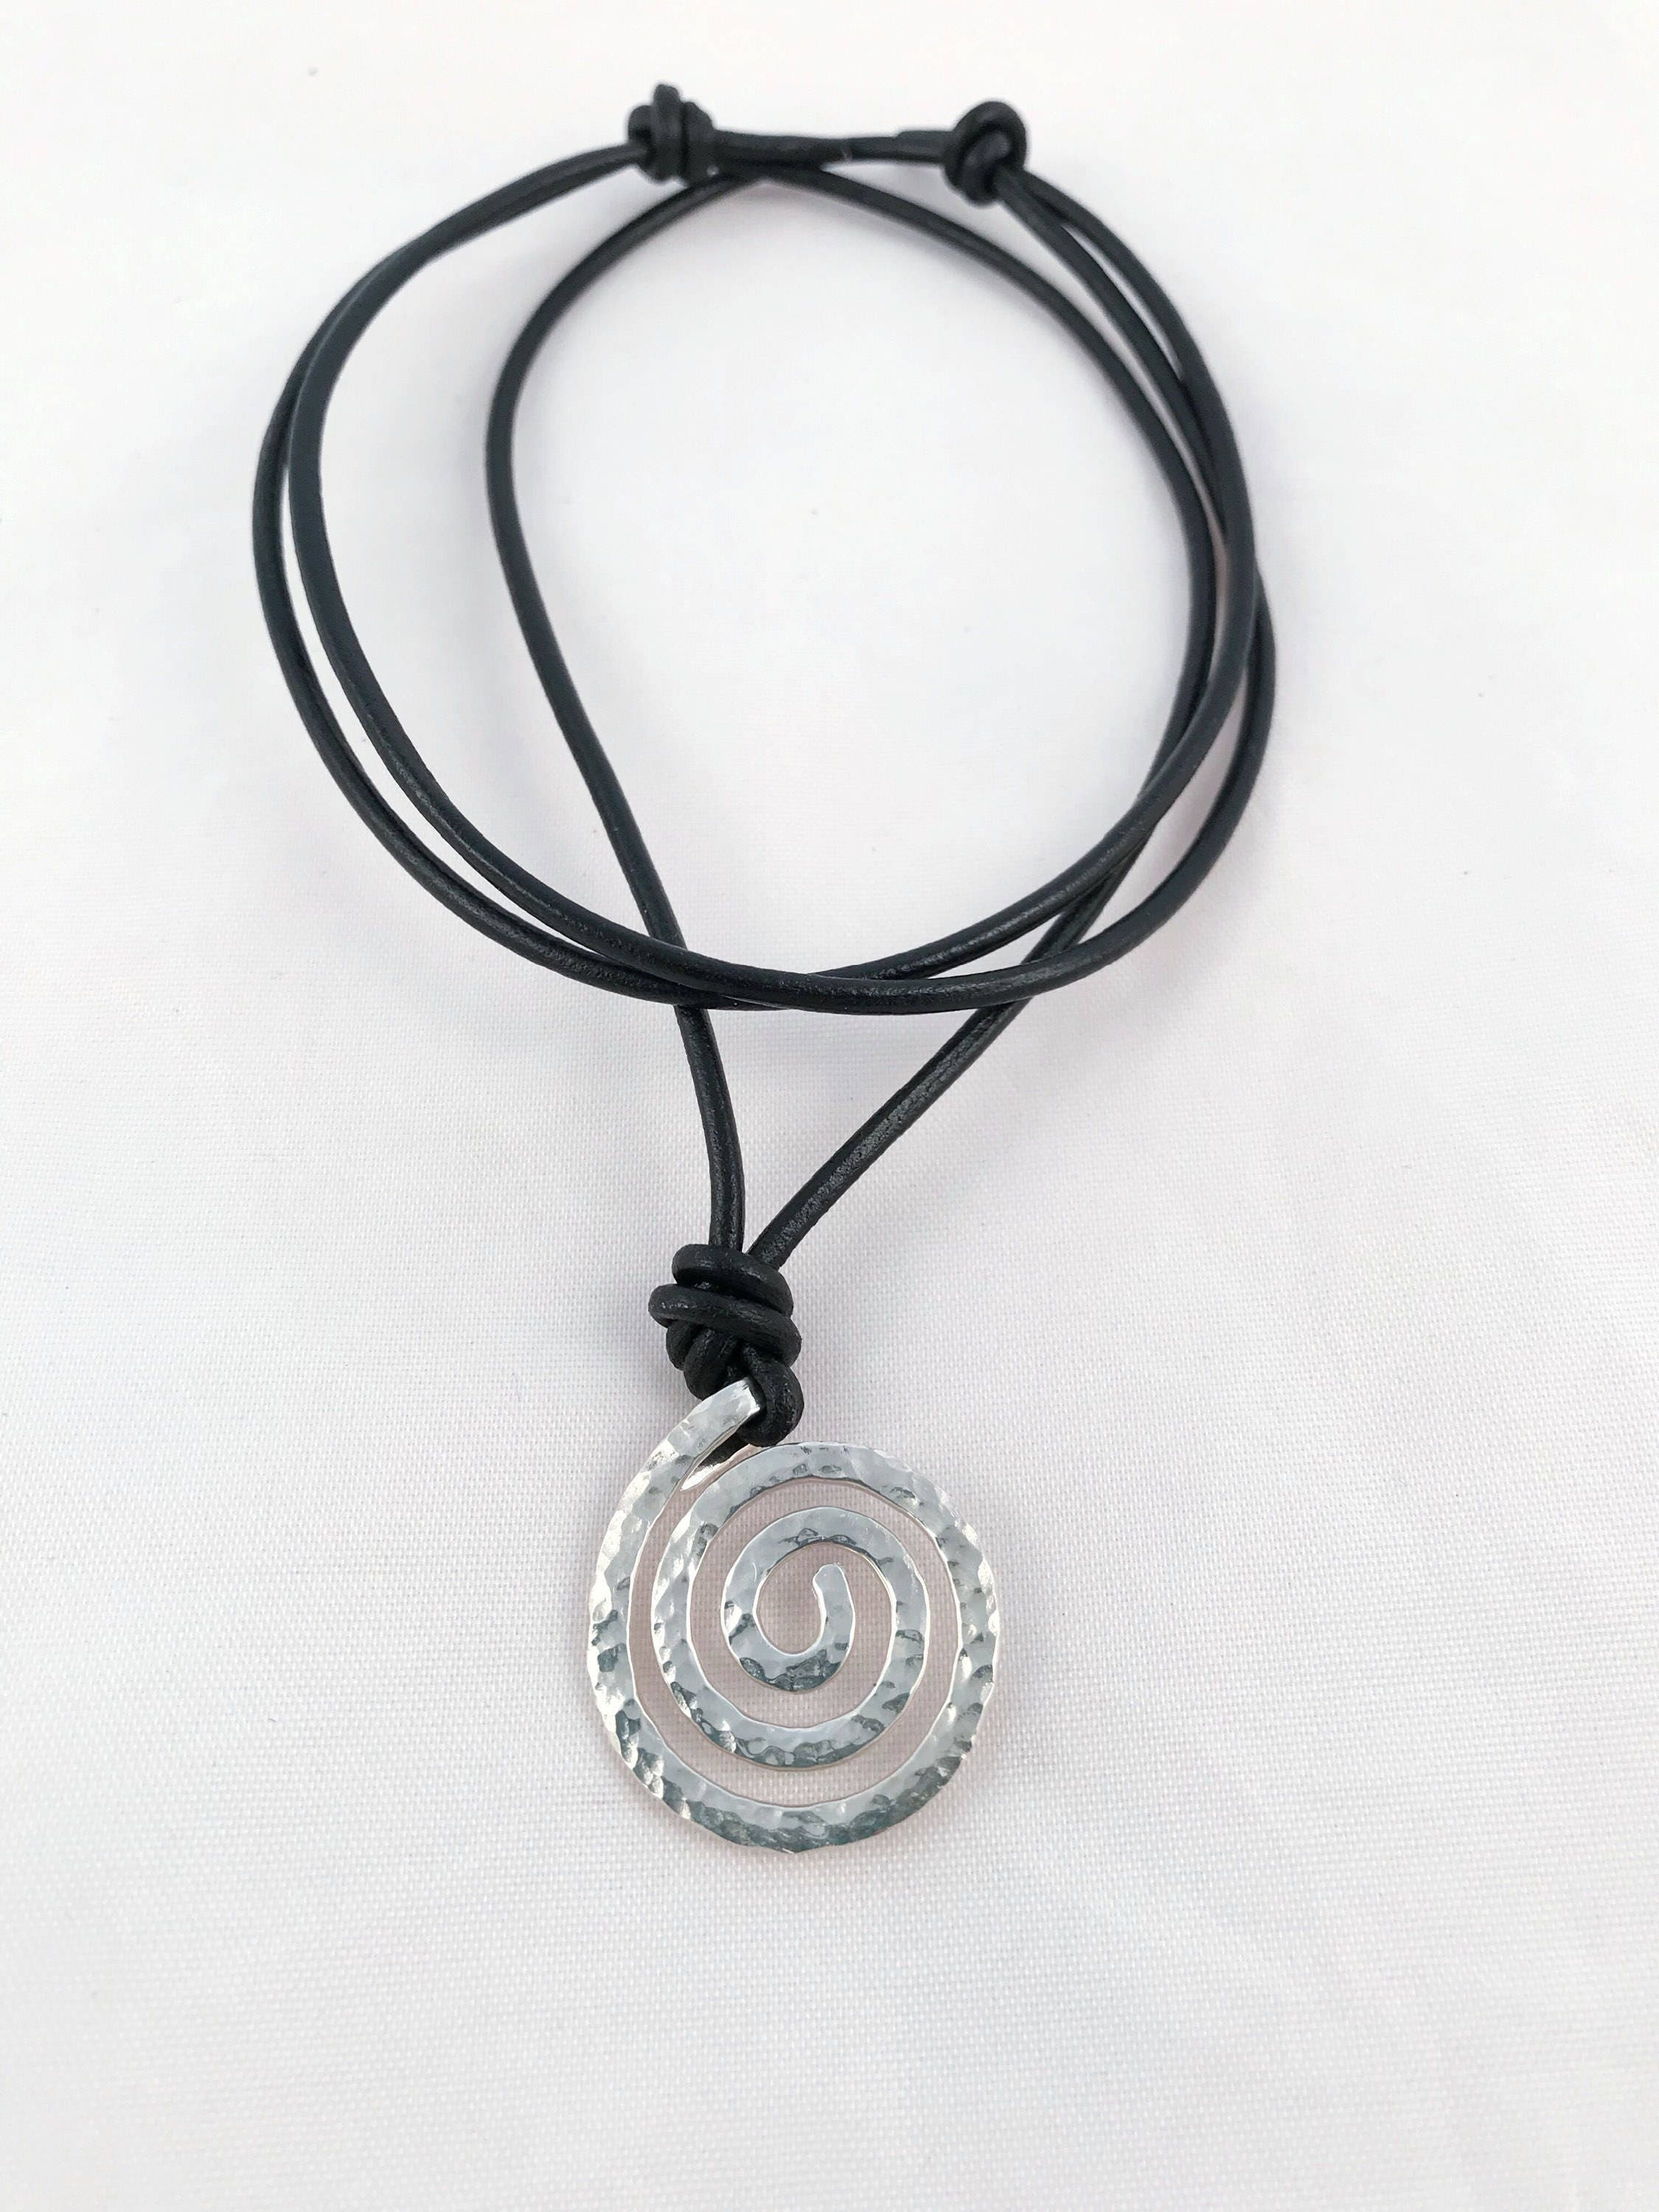 card ice jewelry model pendant sterling celtic spiral gift newgrange single product contemporary silver